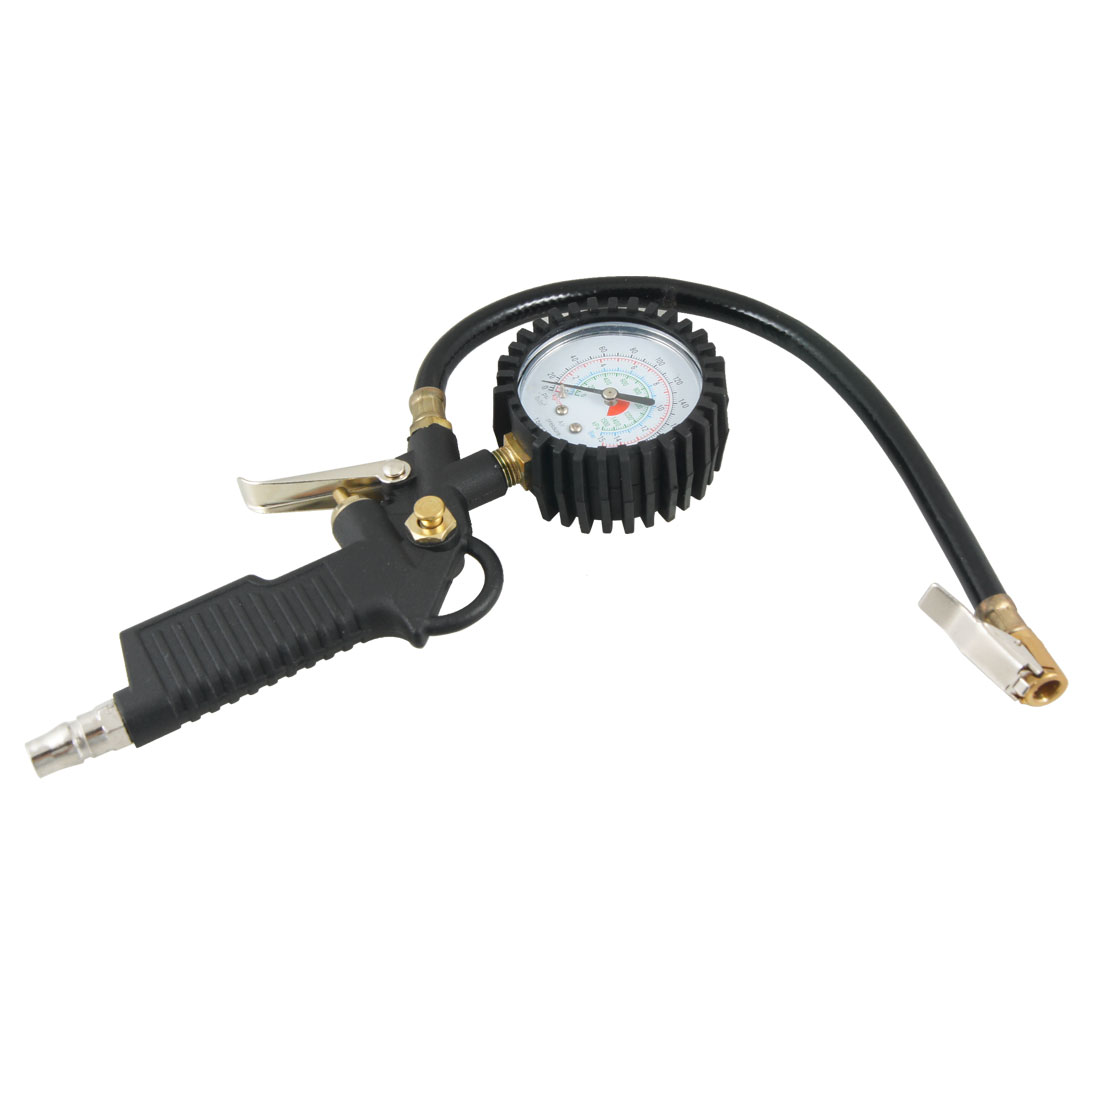 Car Motorcycle Antislip Grip Tyre Tire Inflator w Air Pressure Gauge